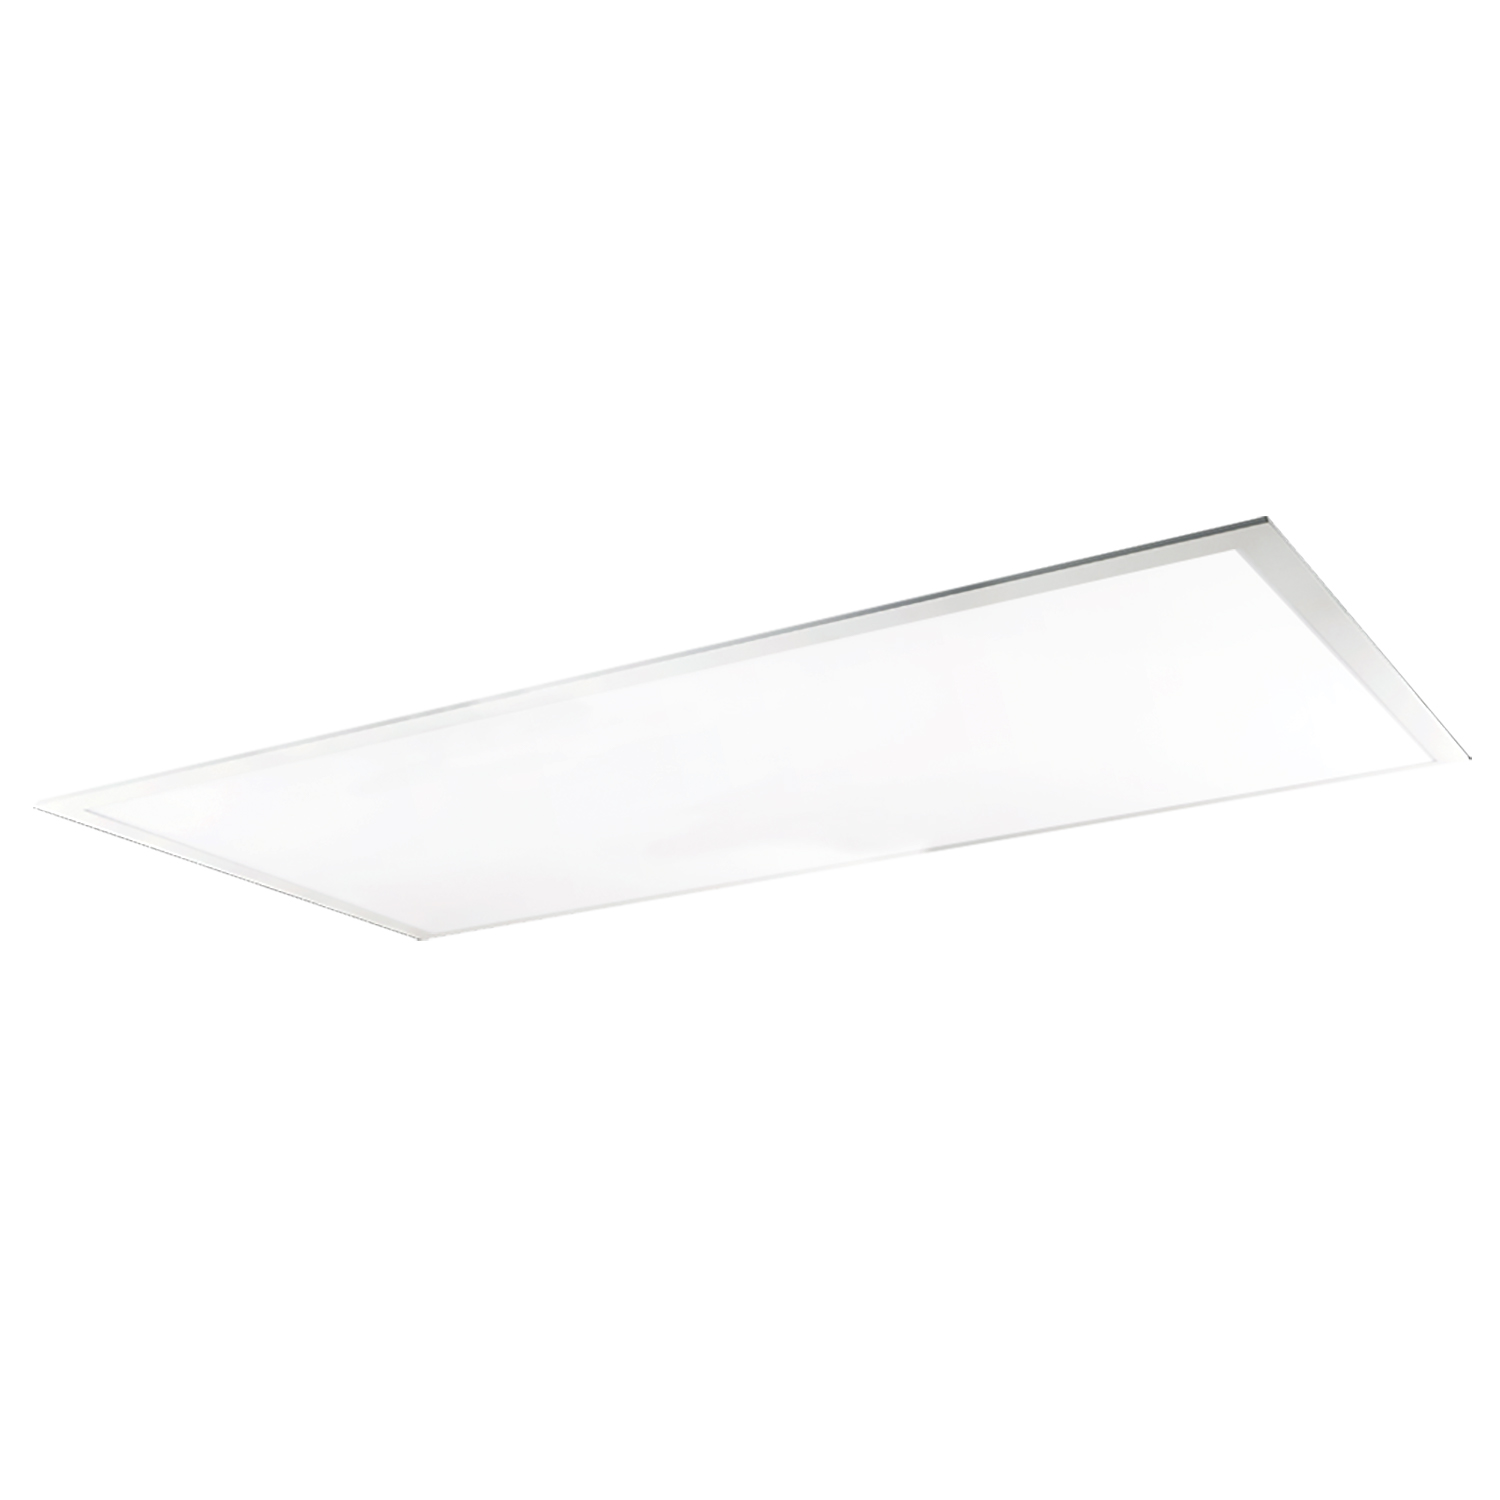 14EPL40/835/EM/LED 81988 ProLED EDGE-LIT FLAT PANEL 1X4 40W 3500K 0-10V DIMMABLE w/Battery Backup